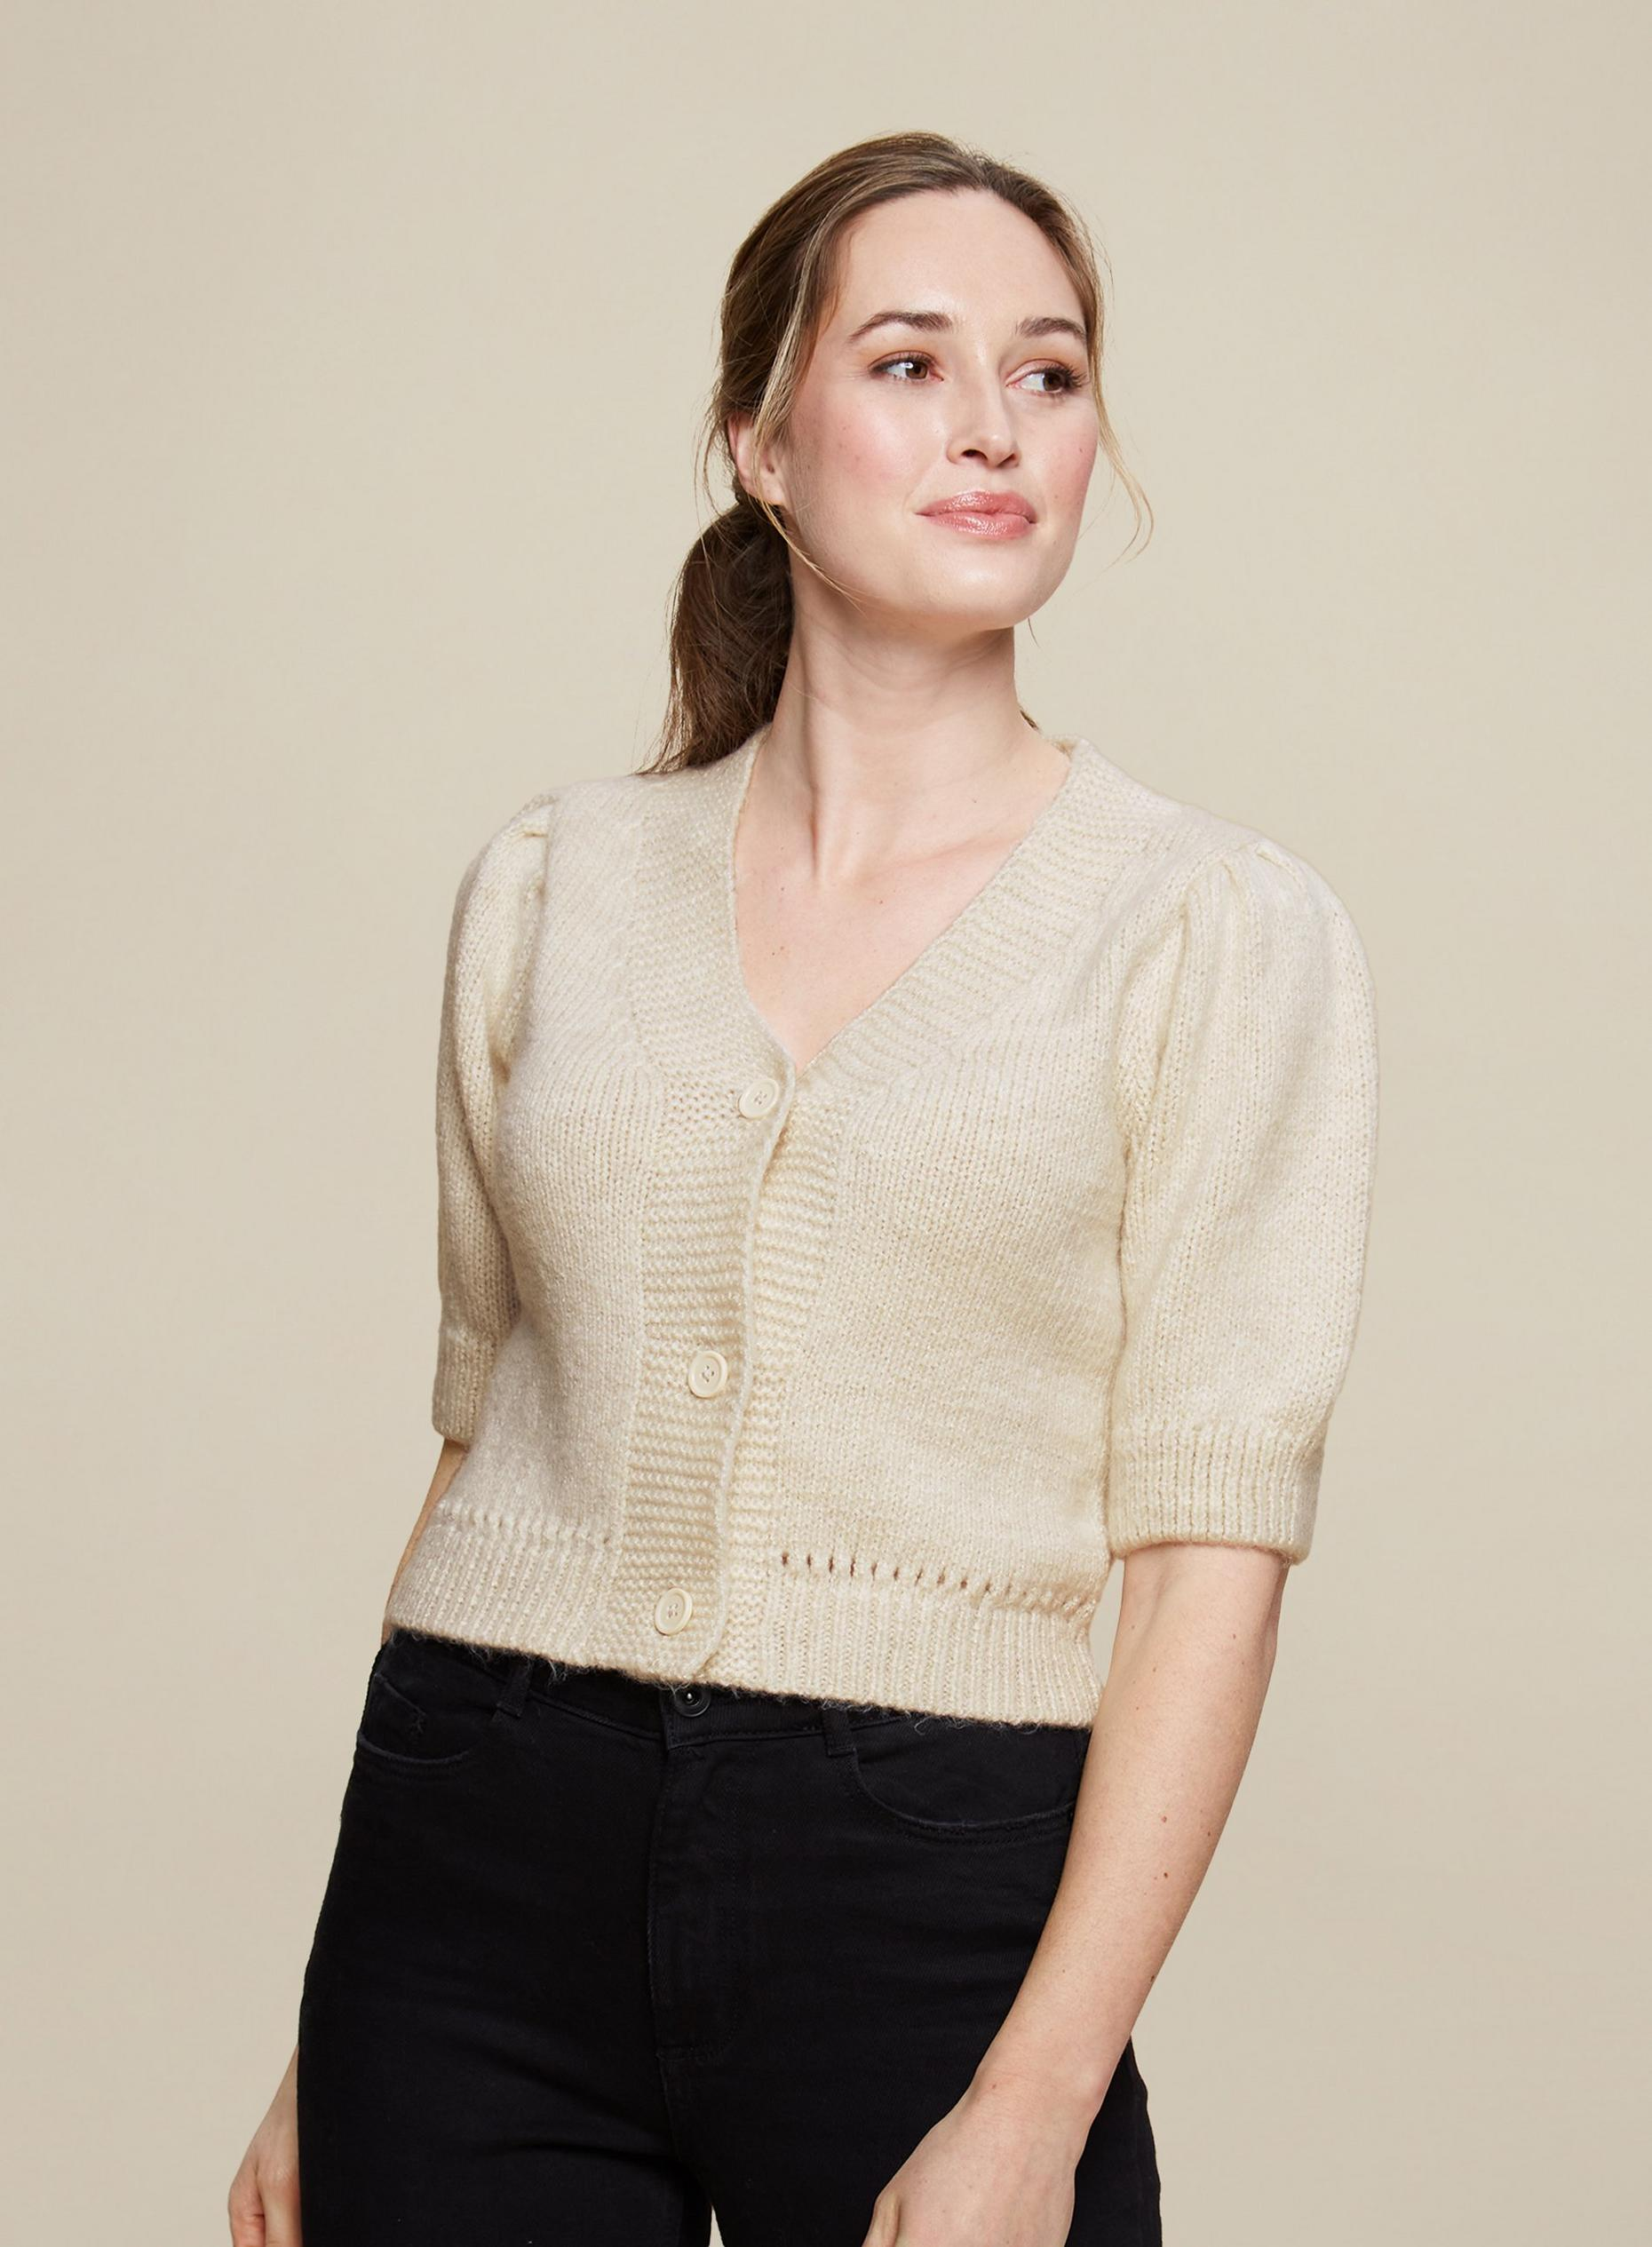 Oatmeal Half Sleeve Cropped Knitted Cardigan